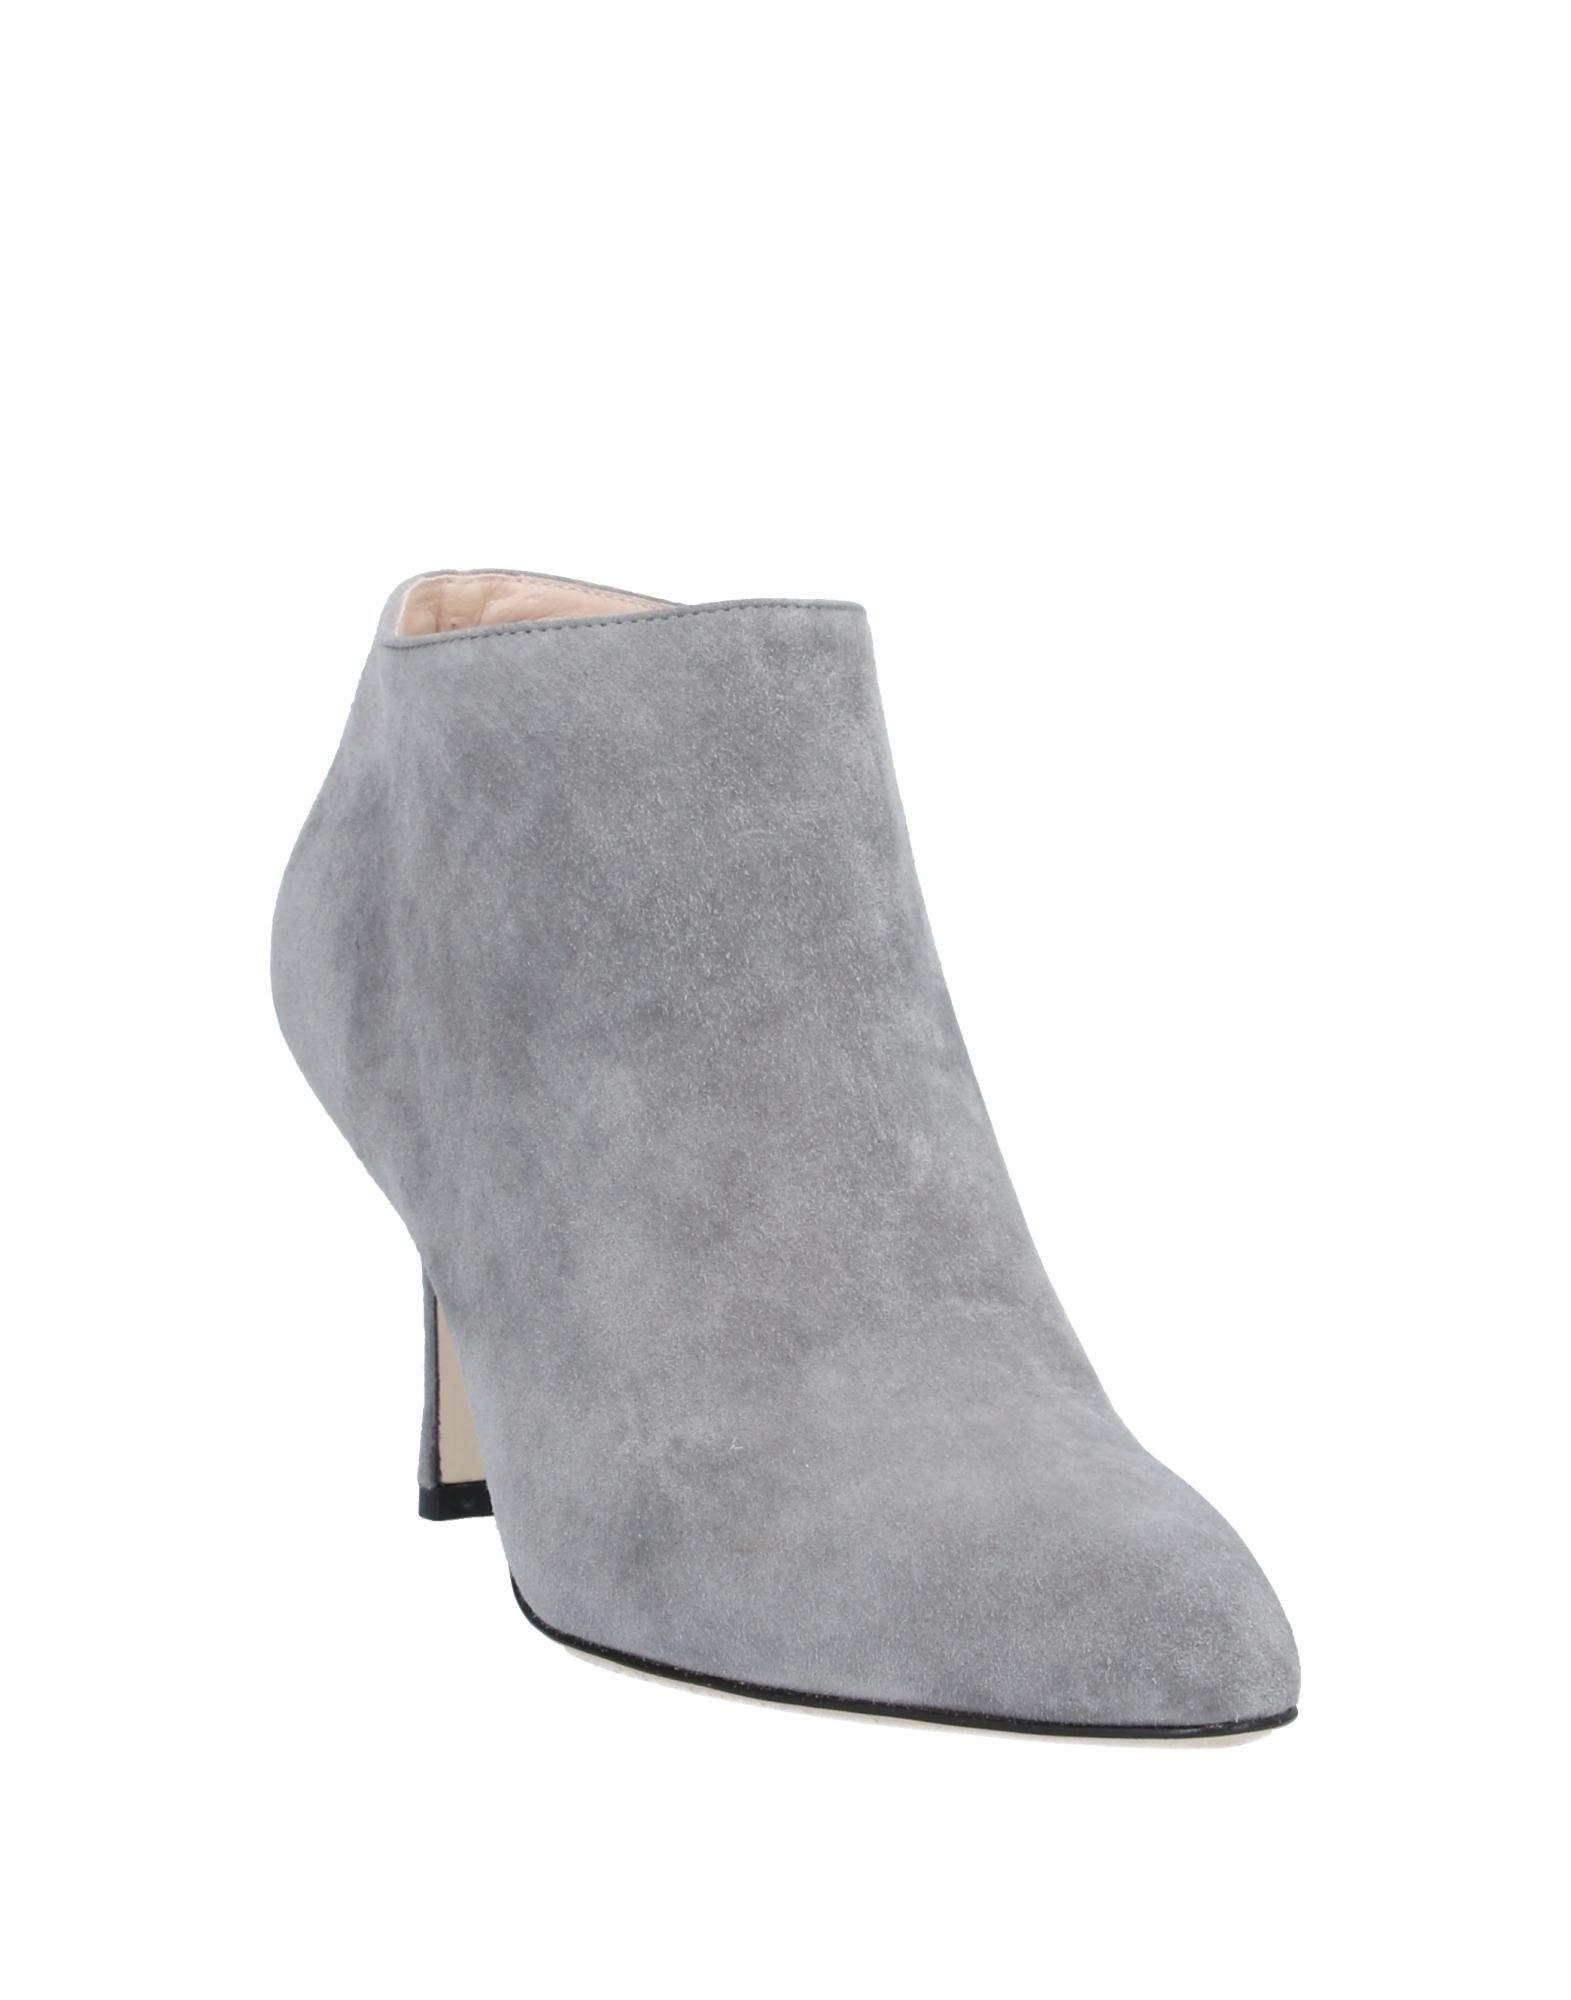 Sergio Rossi Leather Shoe Boots in Lead (Grey)